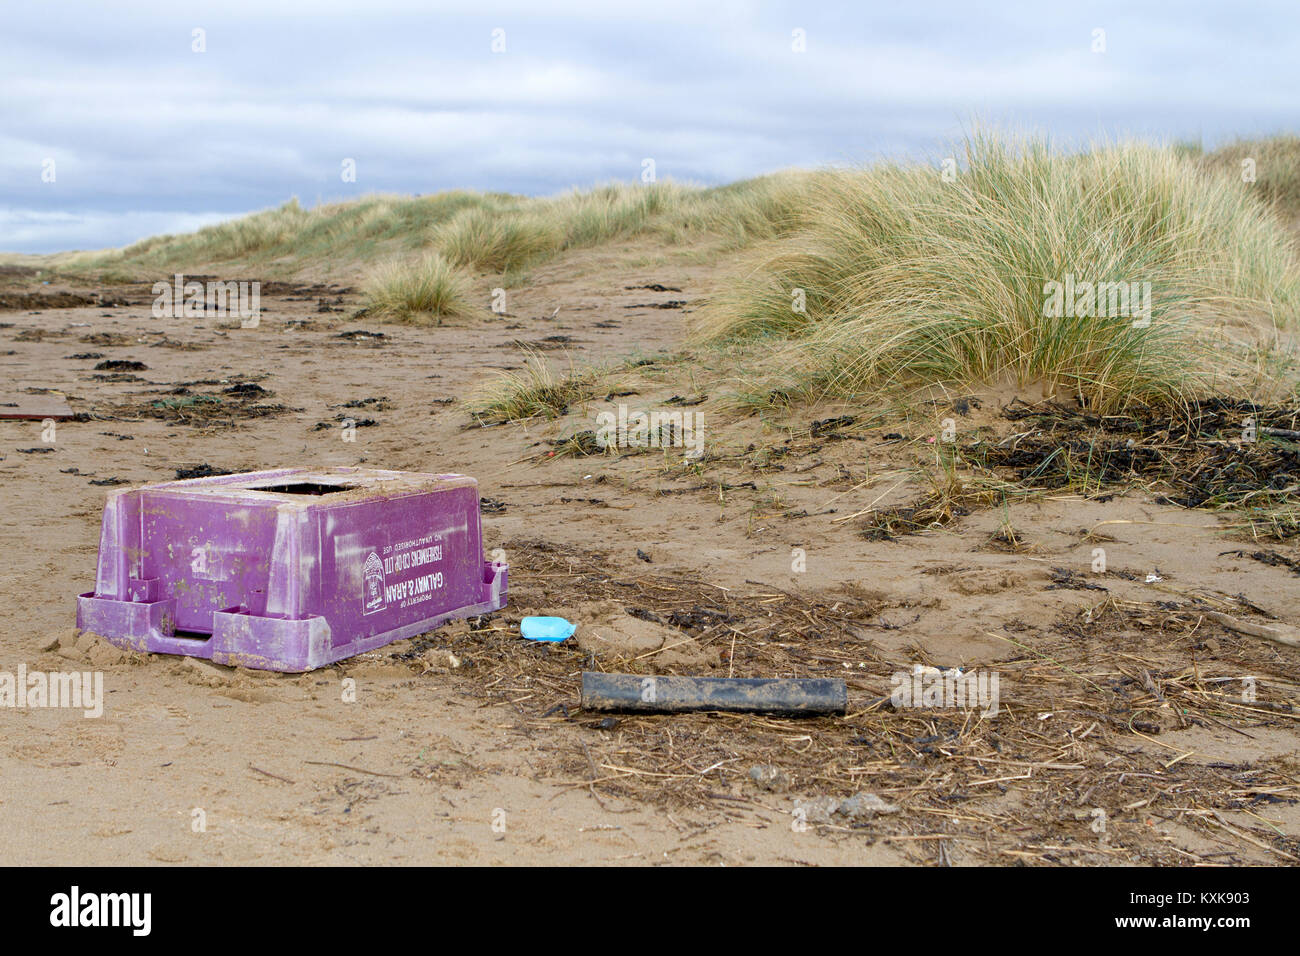 Plastic bottles and waste beach debris washed up on shore on the beach at Southport in Merseyside - Stock Image